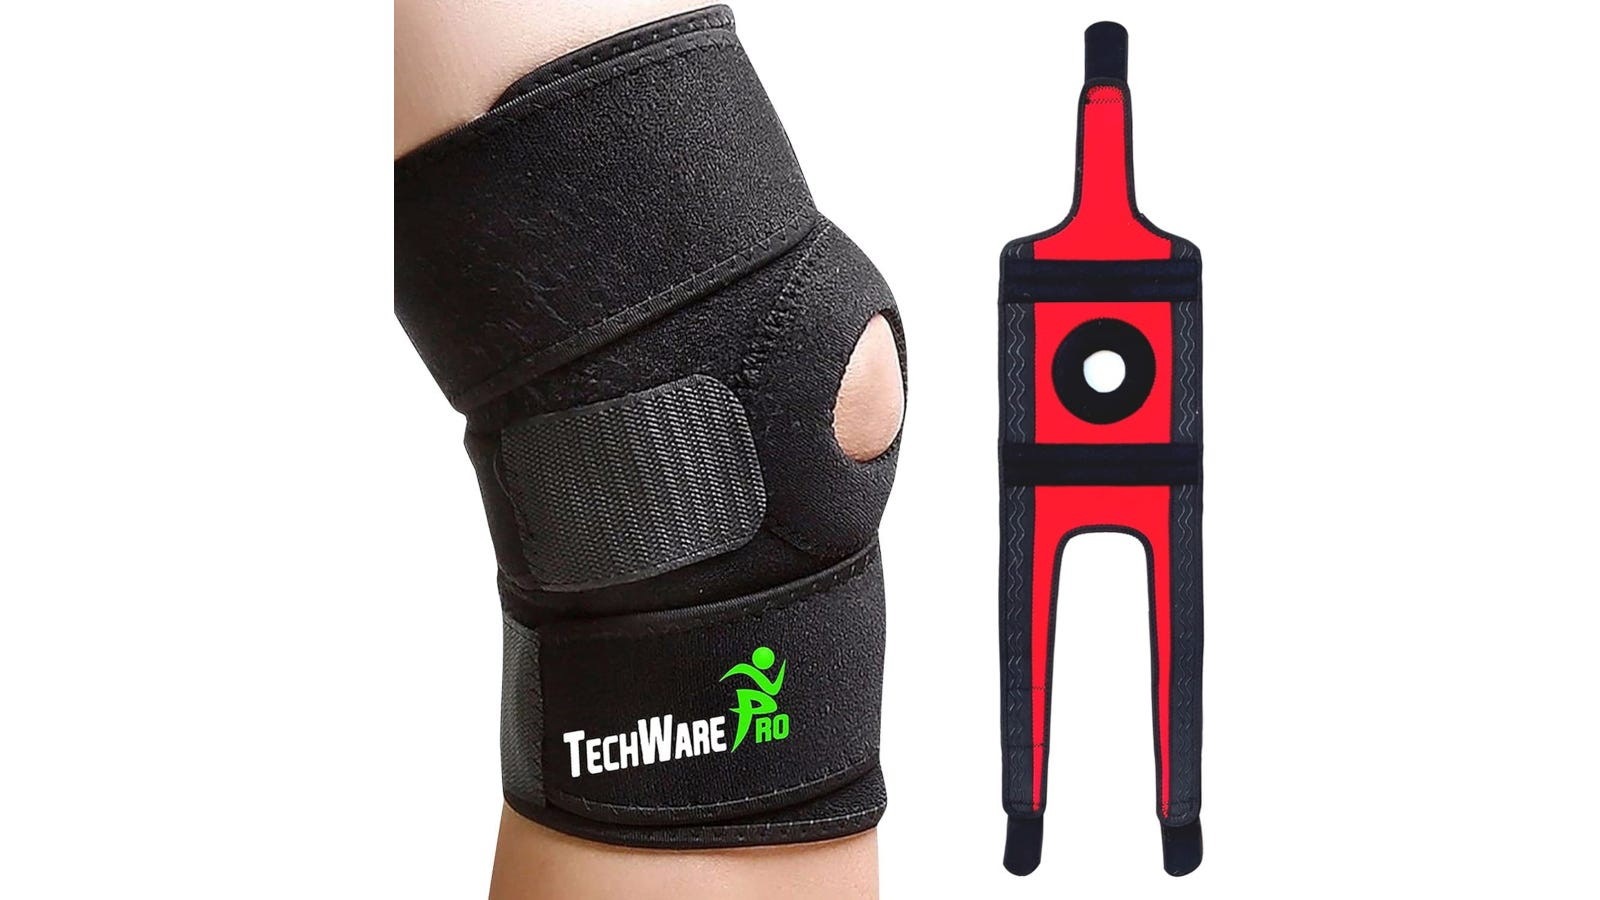 A person wearing a black open-patella knee brace with dual stabilizers with the open device showcasing the red interior shown to the right.